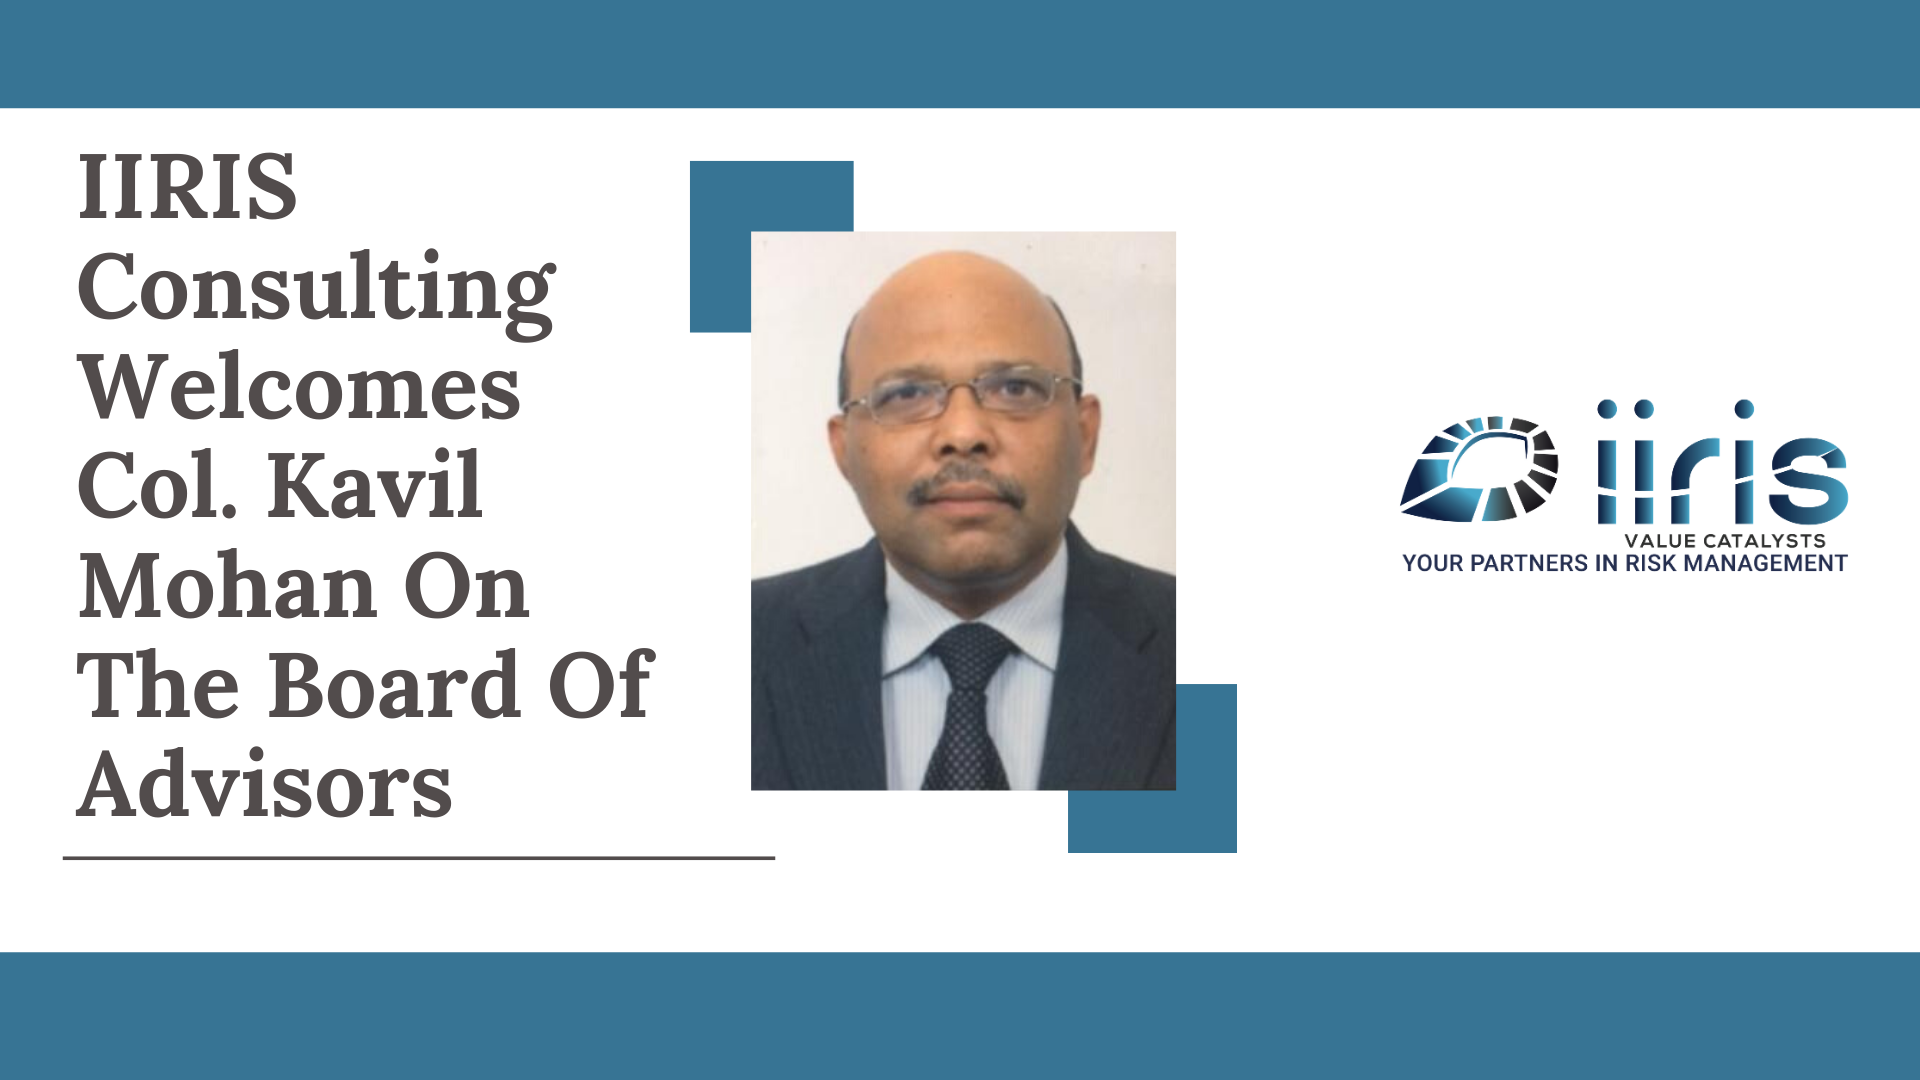 IIRIS Welcomes Col. Kavil Mohan on the Board of Advisors